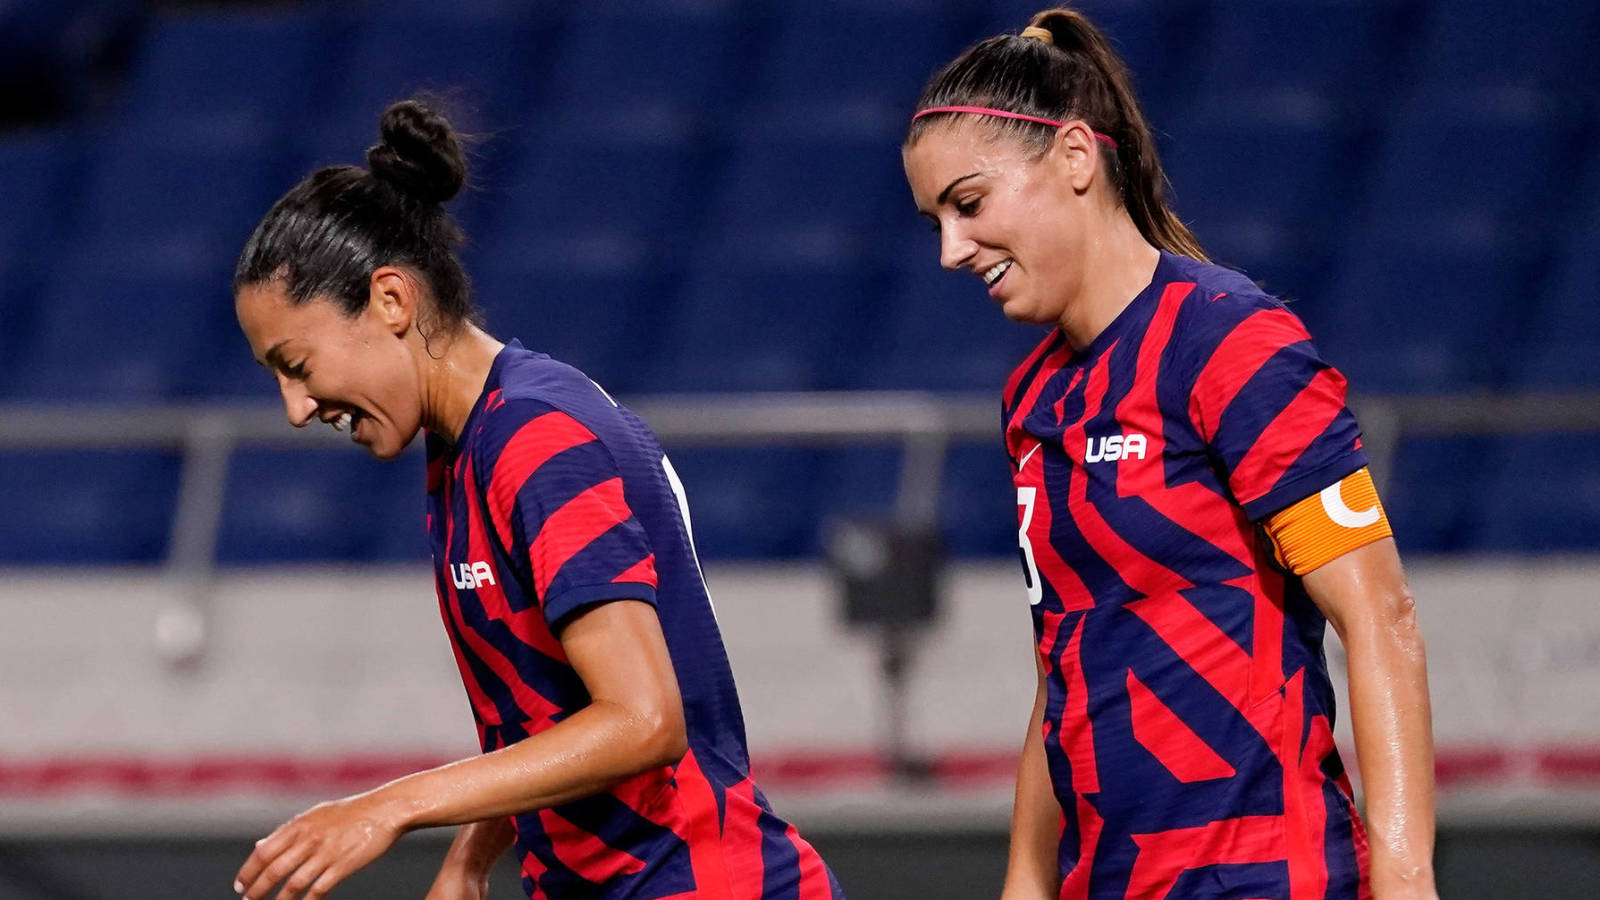 USWNT's Alex Morgan: Tournament starts at 'knockout stage'